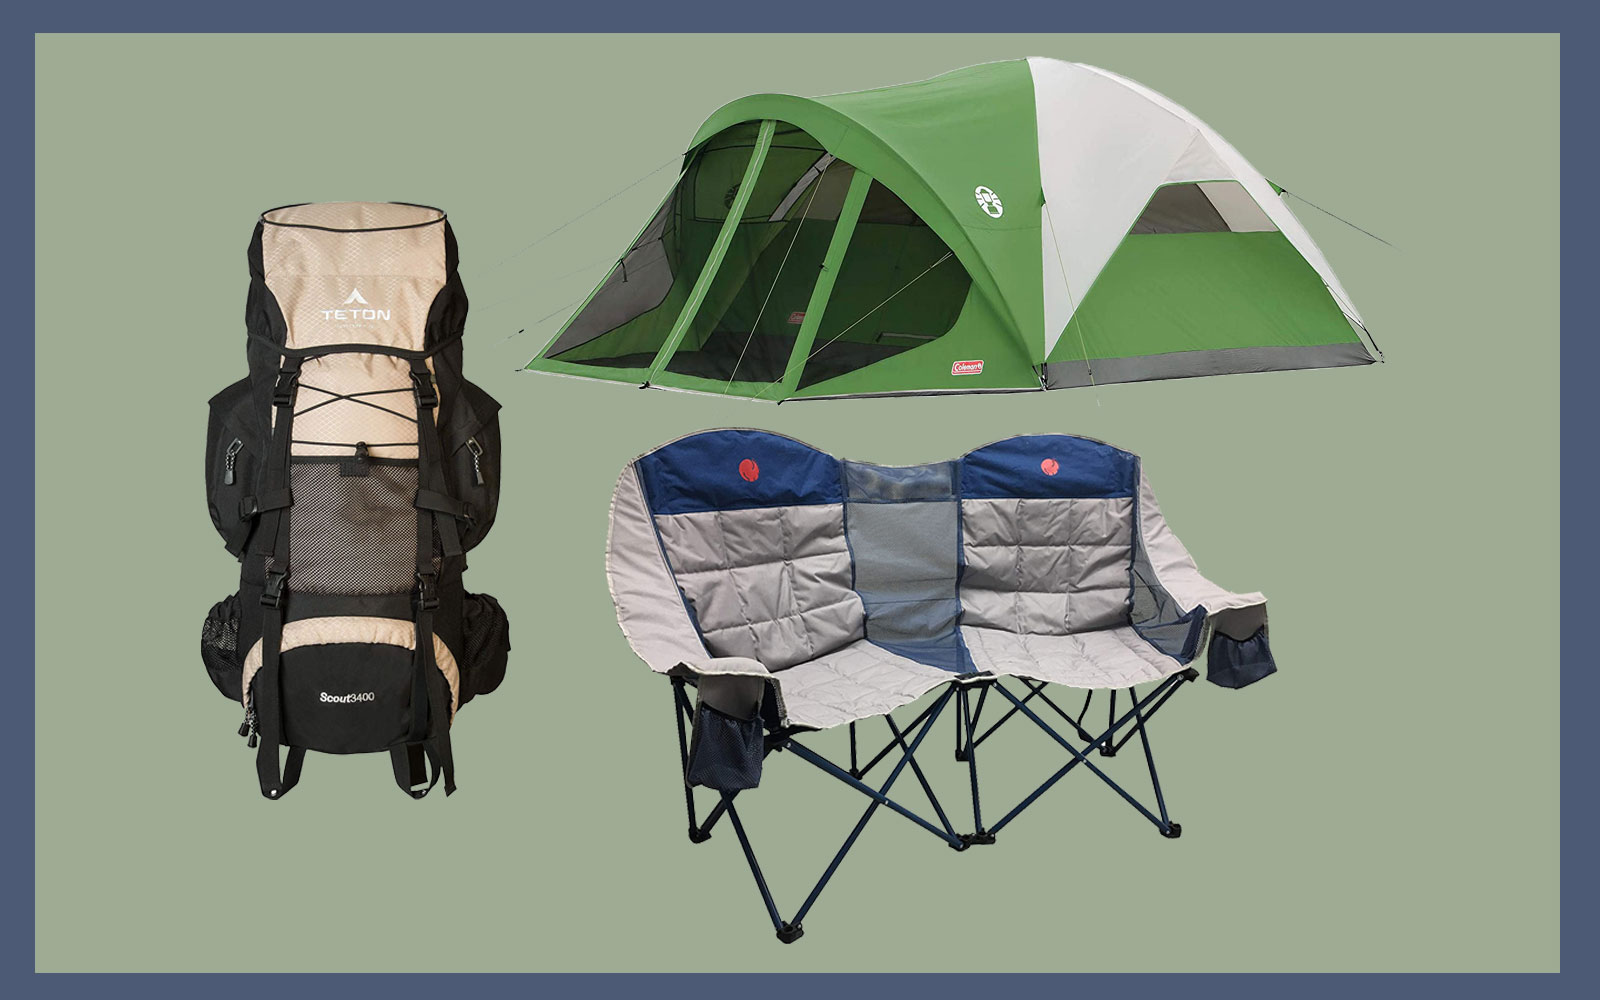 coleman tent, loveseat camping chair, backpack